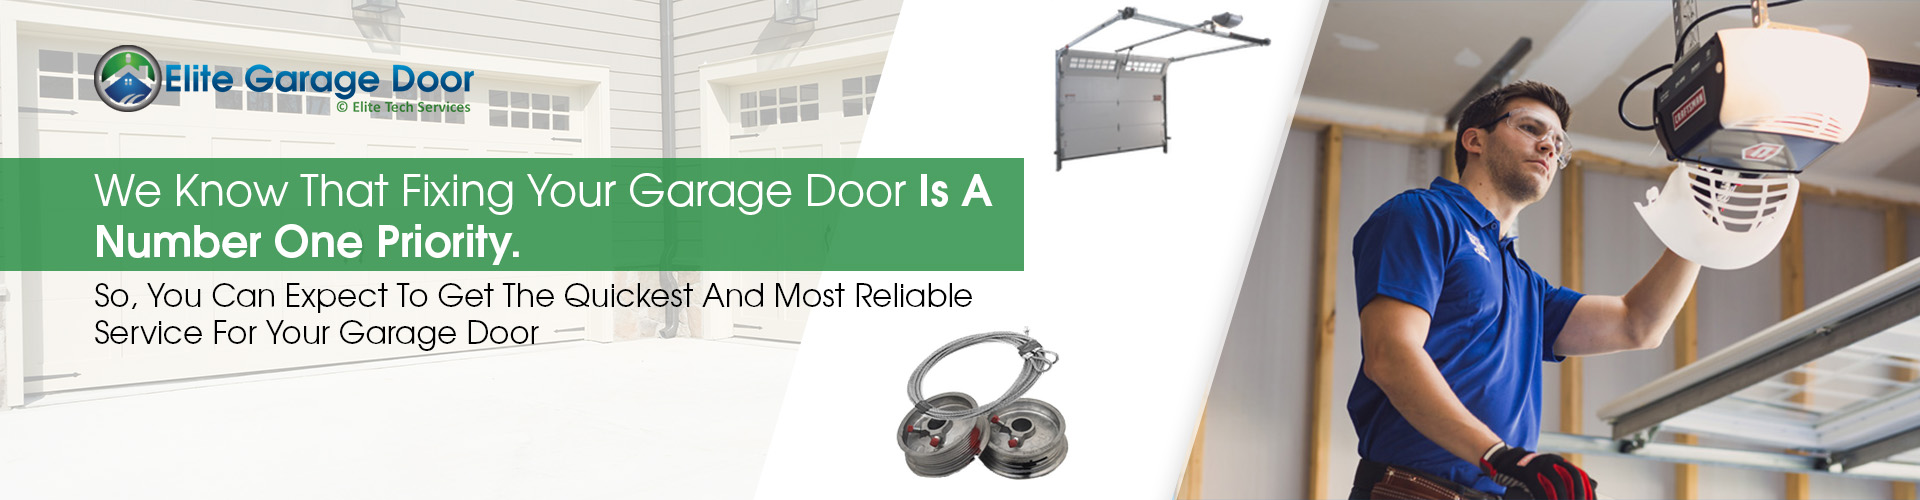 Garage Door Repair & Installation Services In Detroit MI & Surrounding Areas